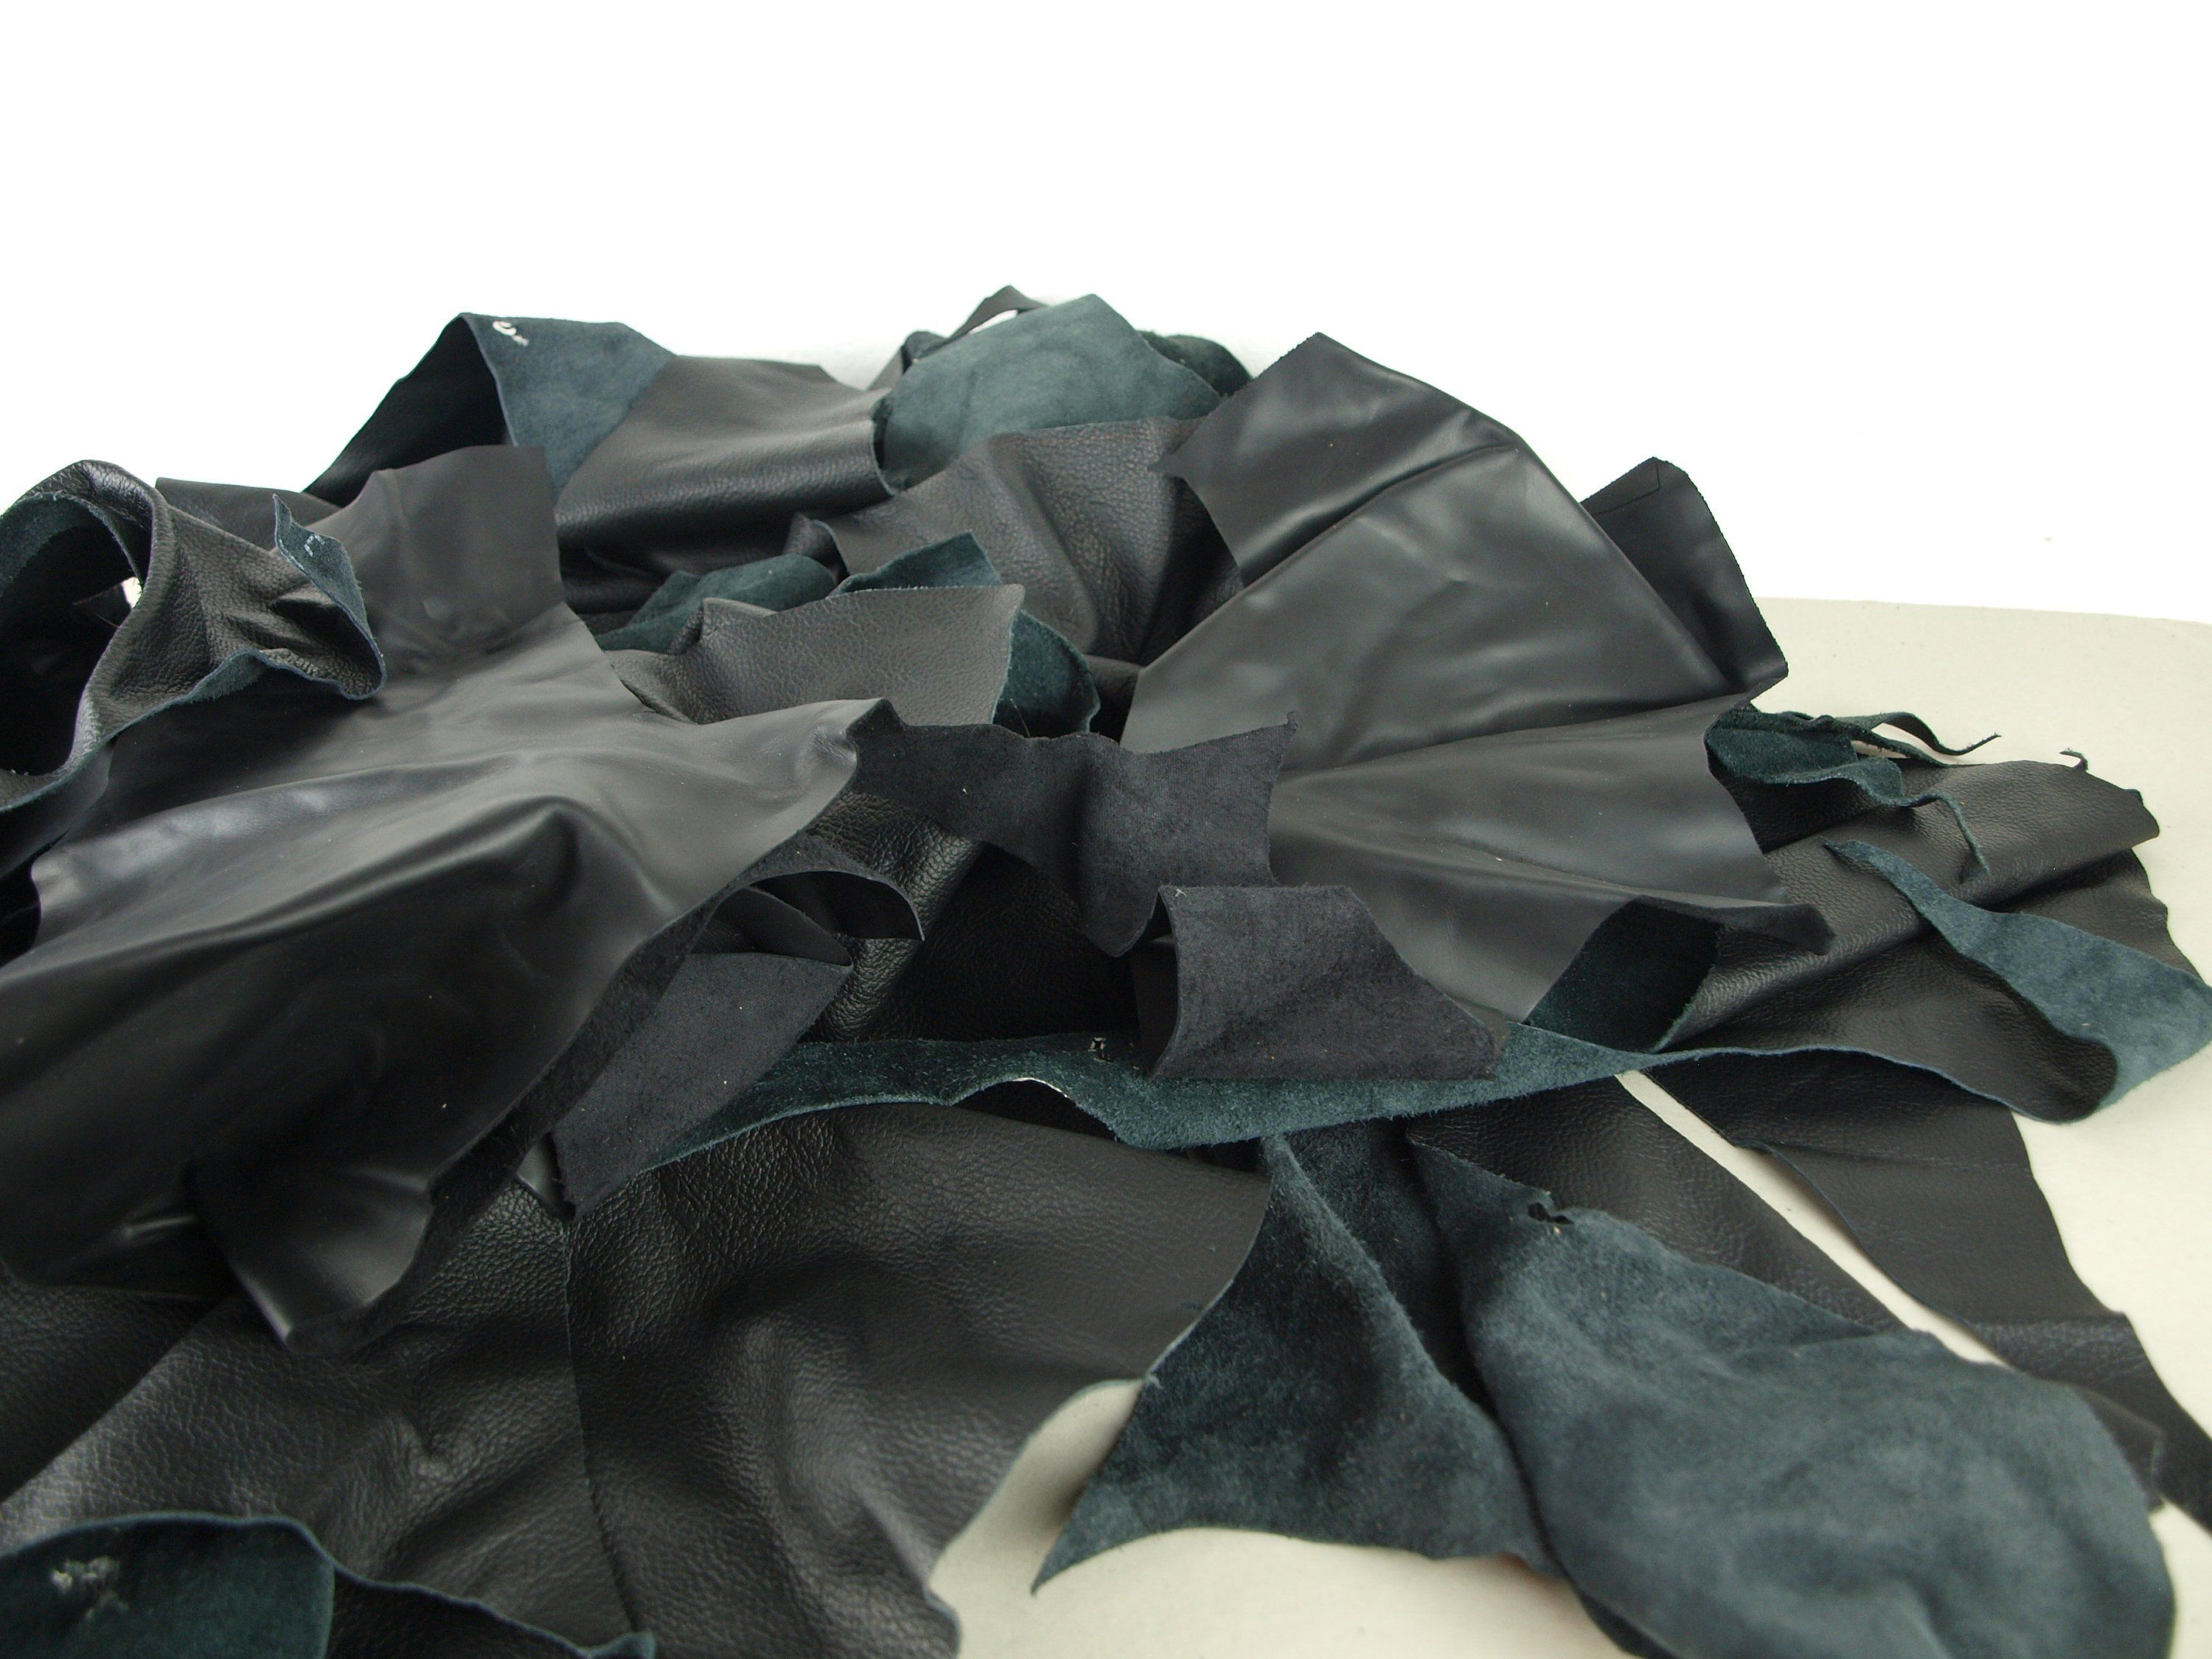 OFFCUTS *** *** SMALL PIECES OF LEATHER